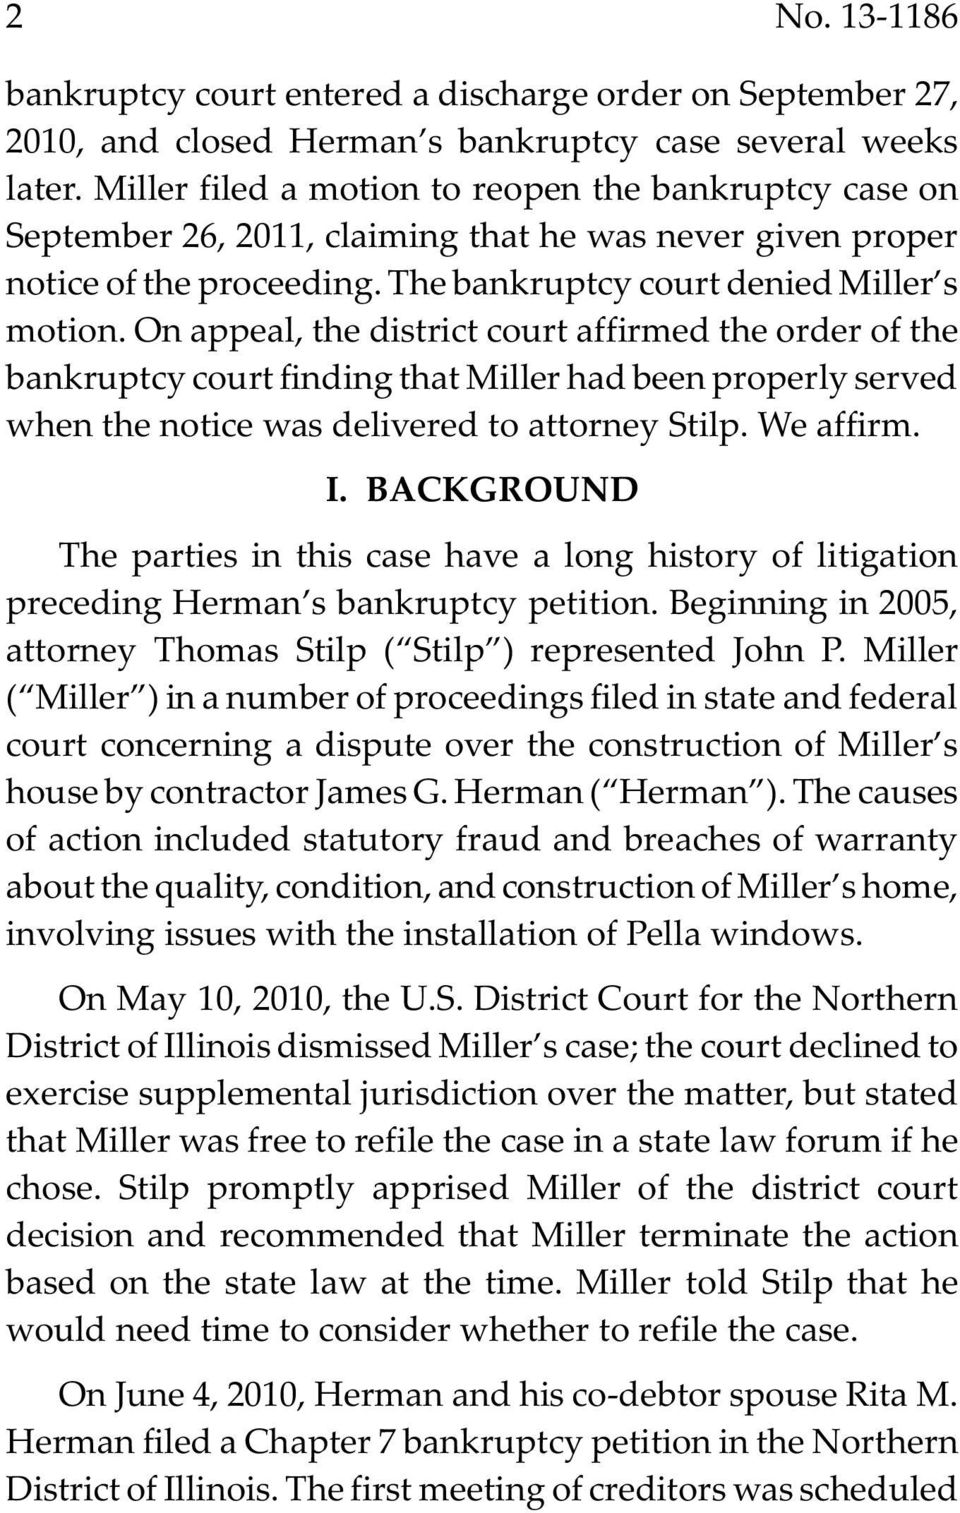 On appeal, the district court affirmed the order of the bankruptcy court finding that Miller had been properly served when the notice was delivered to attorney Stilp. We affirm. I.